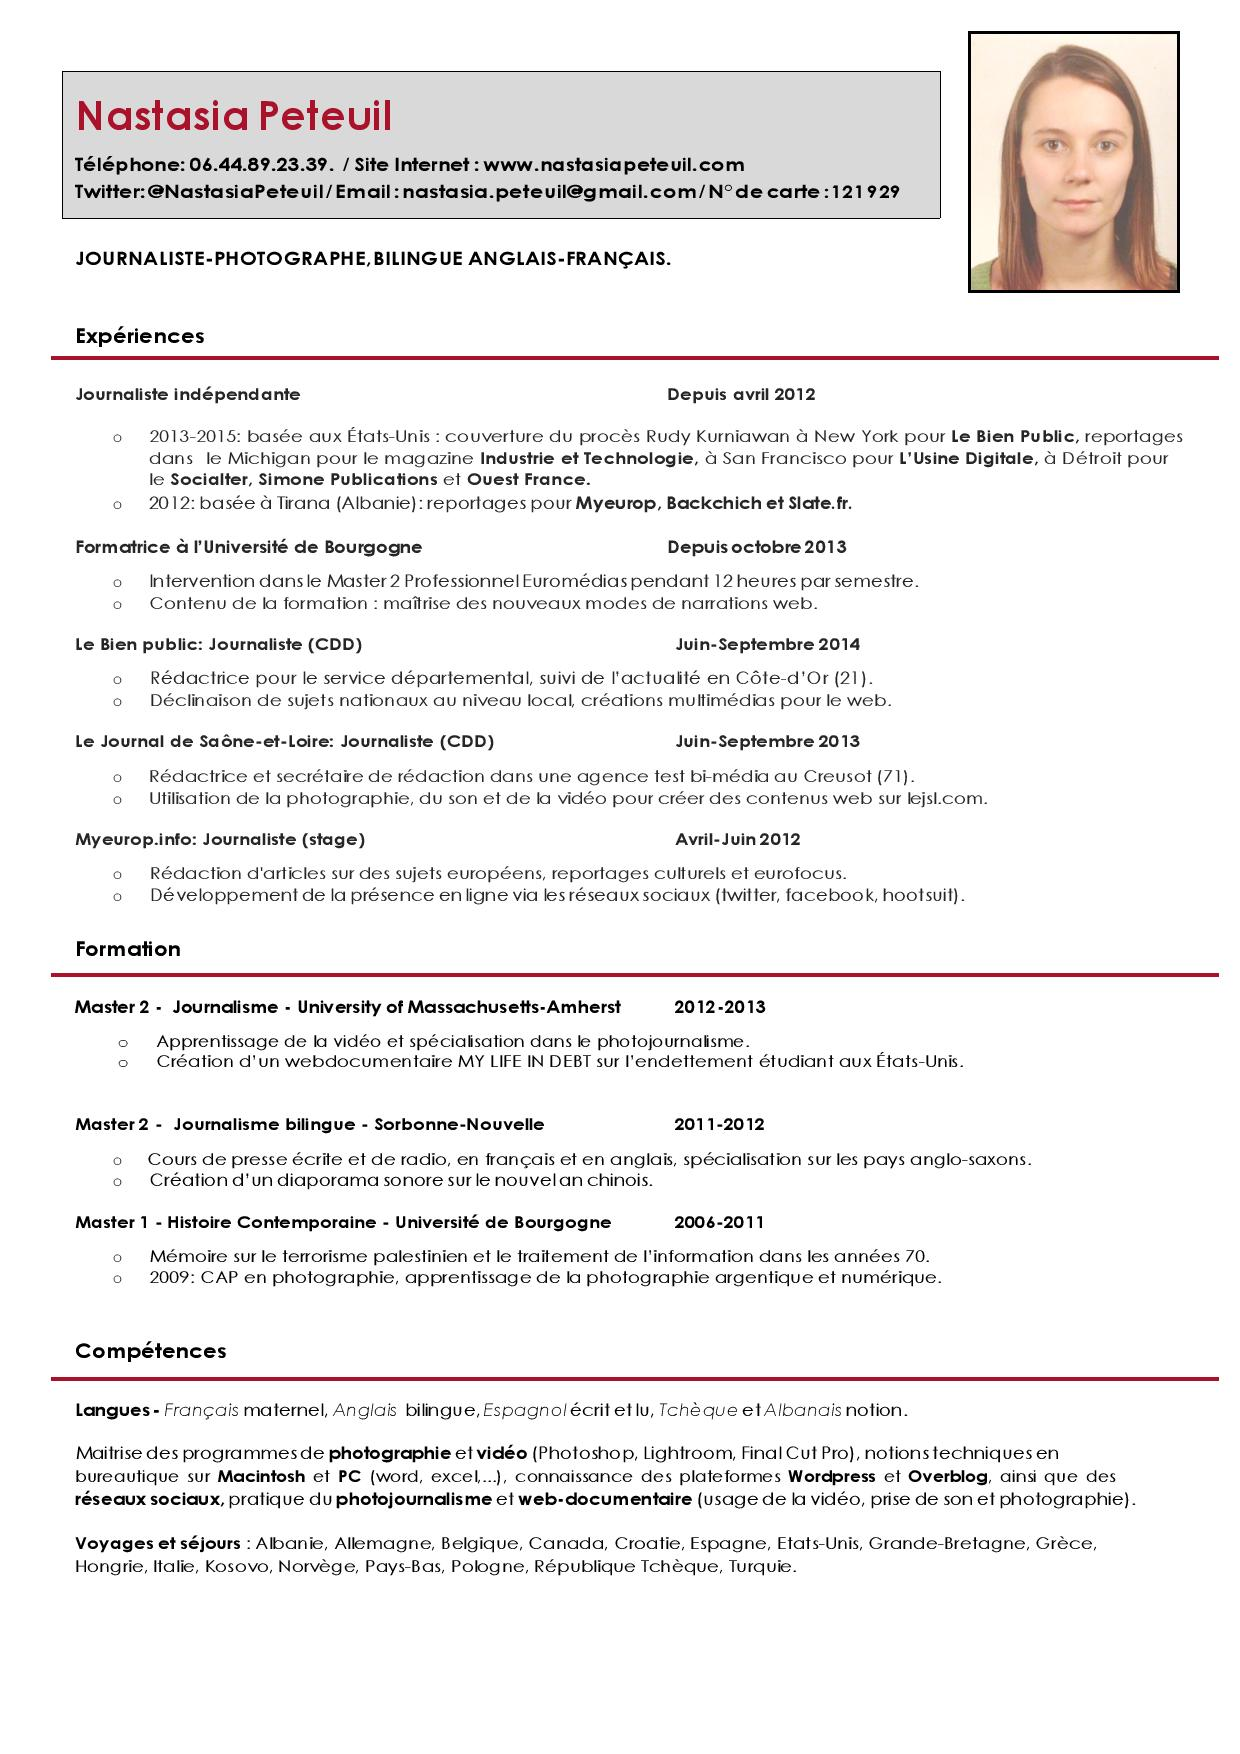 curriculum vitae format 2015 28 images cv format south